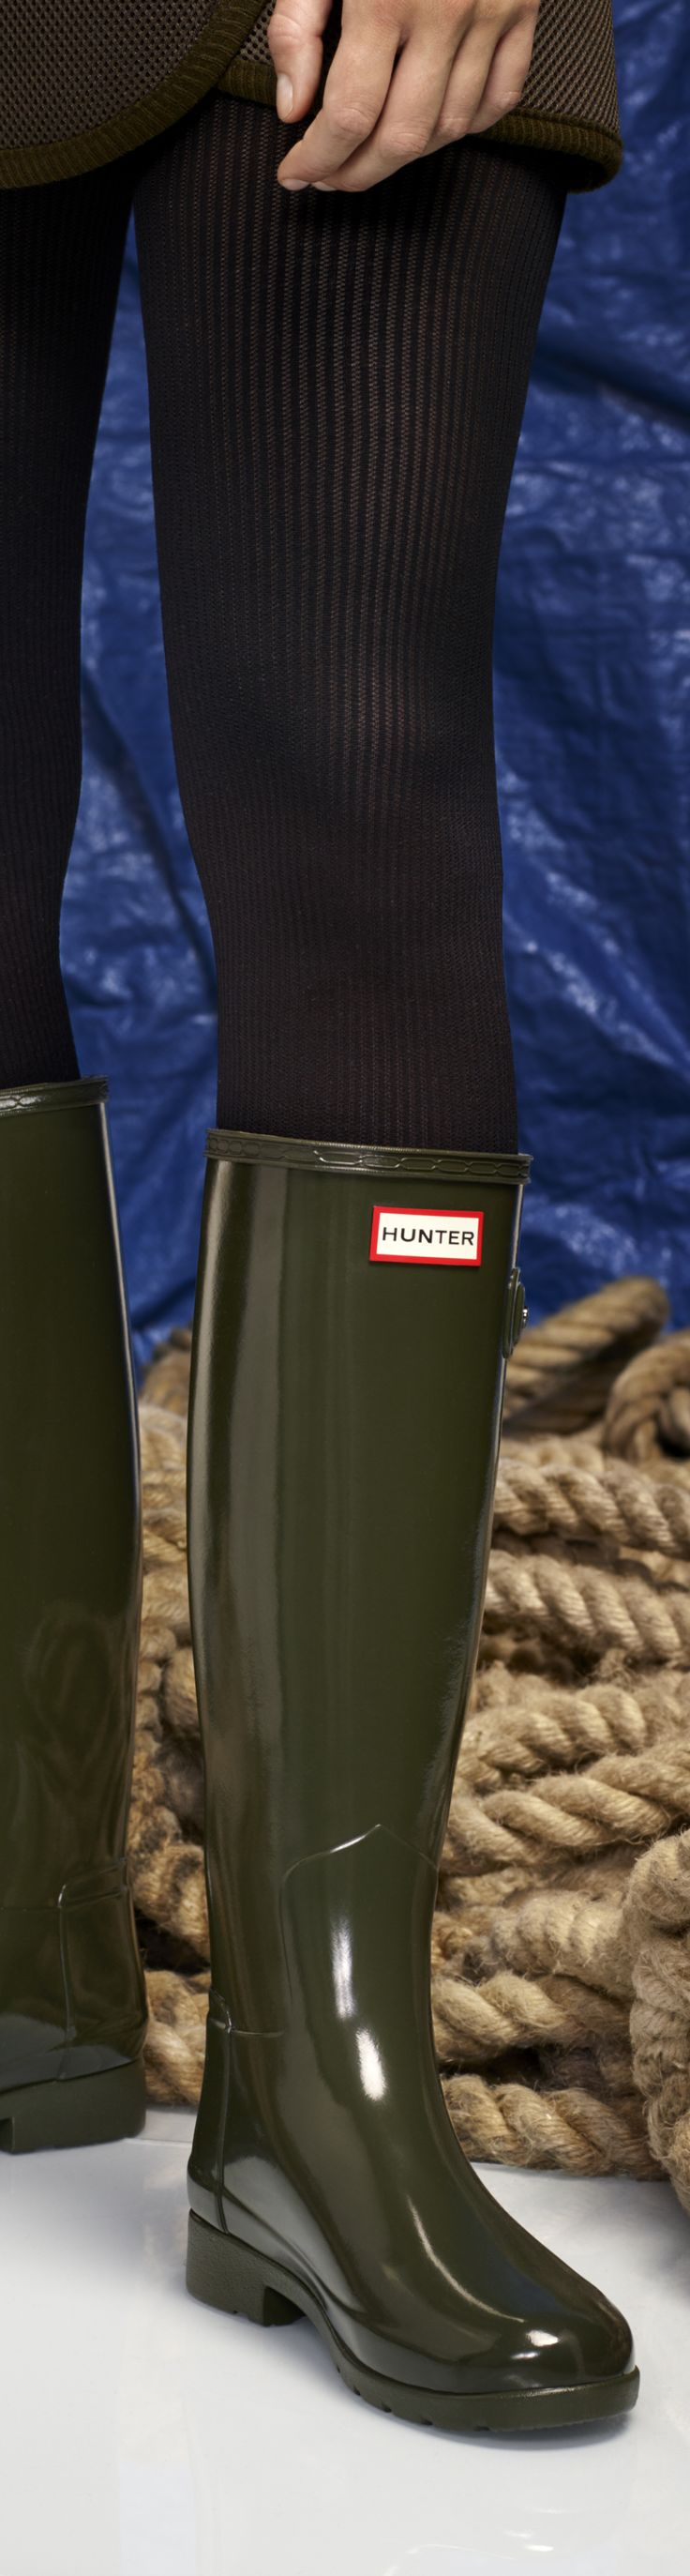 SHOP NOW Refined Footwear// Women's Original Refined Gloss Wellington Boots | Hunter introduces a new sartorial interpretation of the Original boot, presenting the Original Refined Wellington boot in a gloss finish. Creating a more tailored silhouette, key aspects of the Original boot have been redesigned.